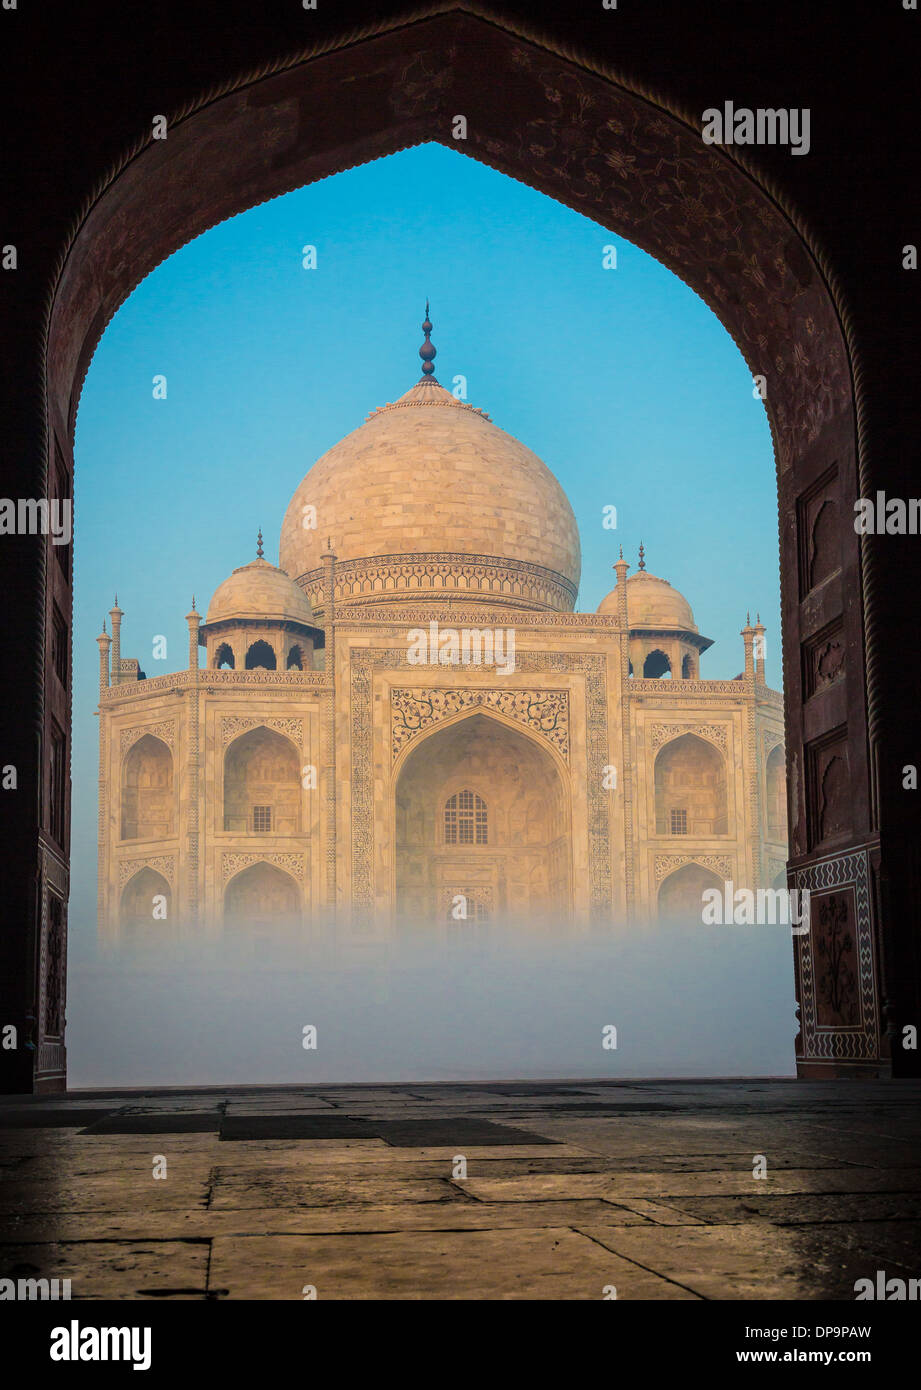 The Taj Mahal is a white marble mausoleum located in Agra, Uttar Pradesh, India - Stock Image